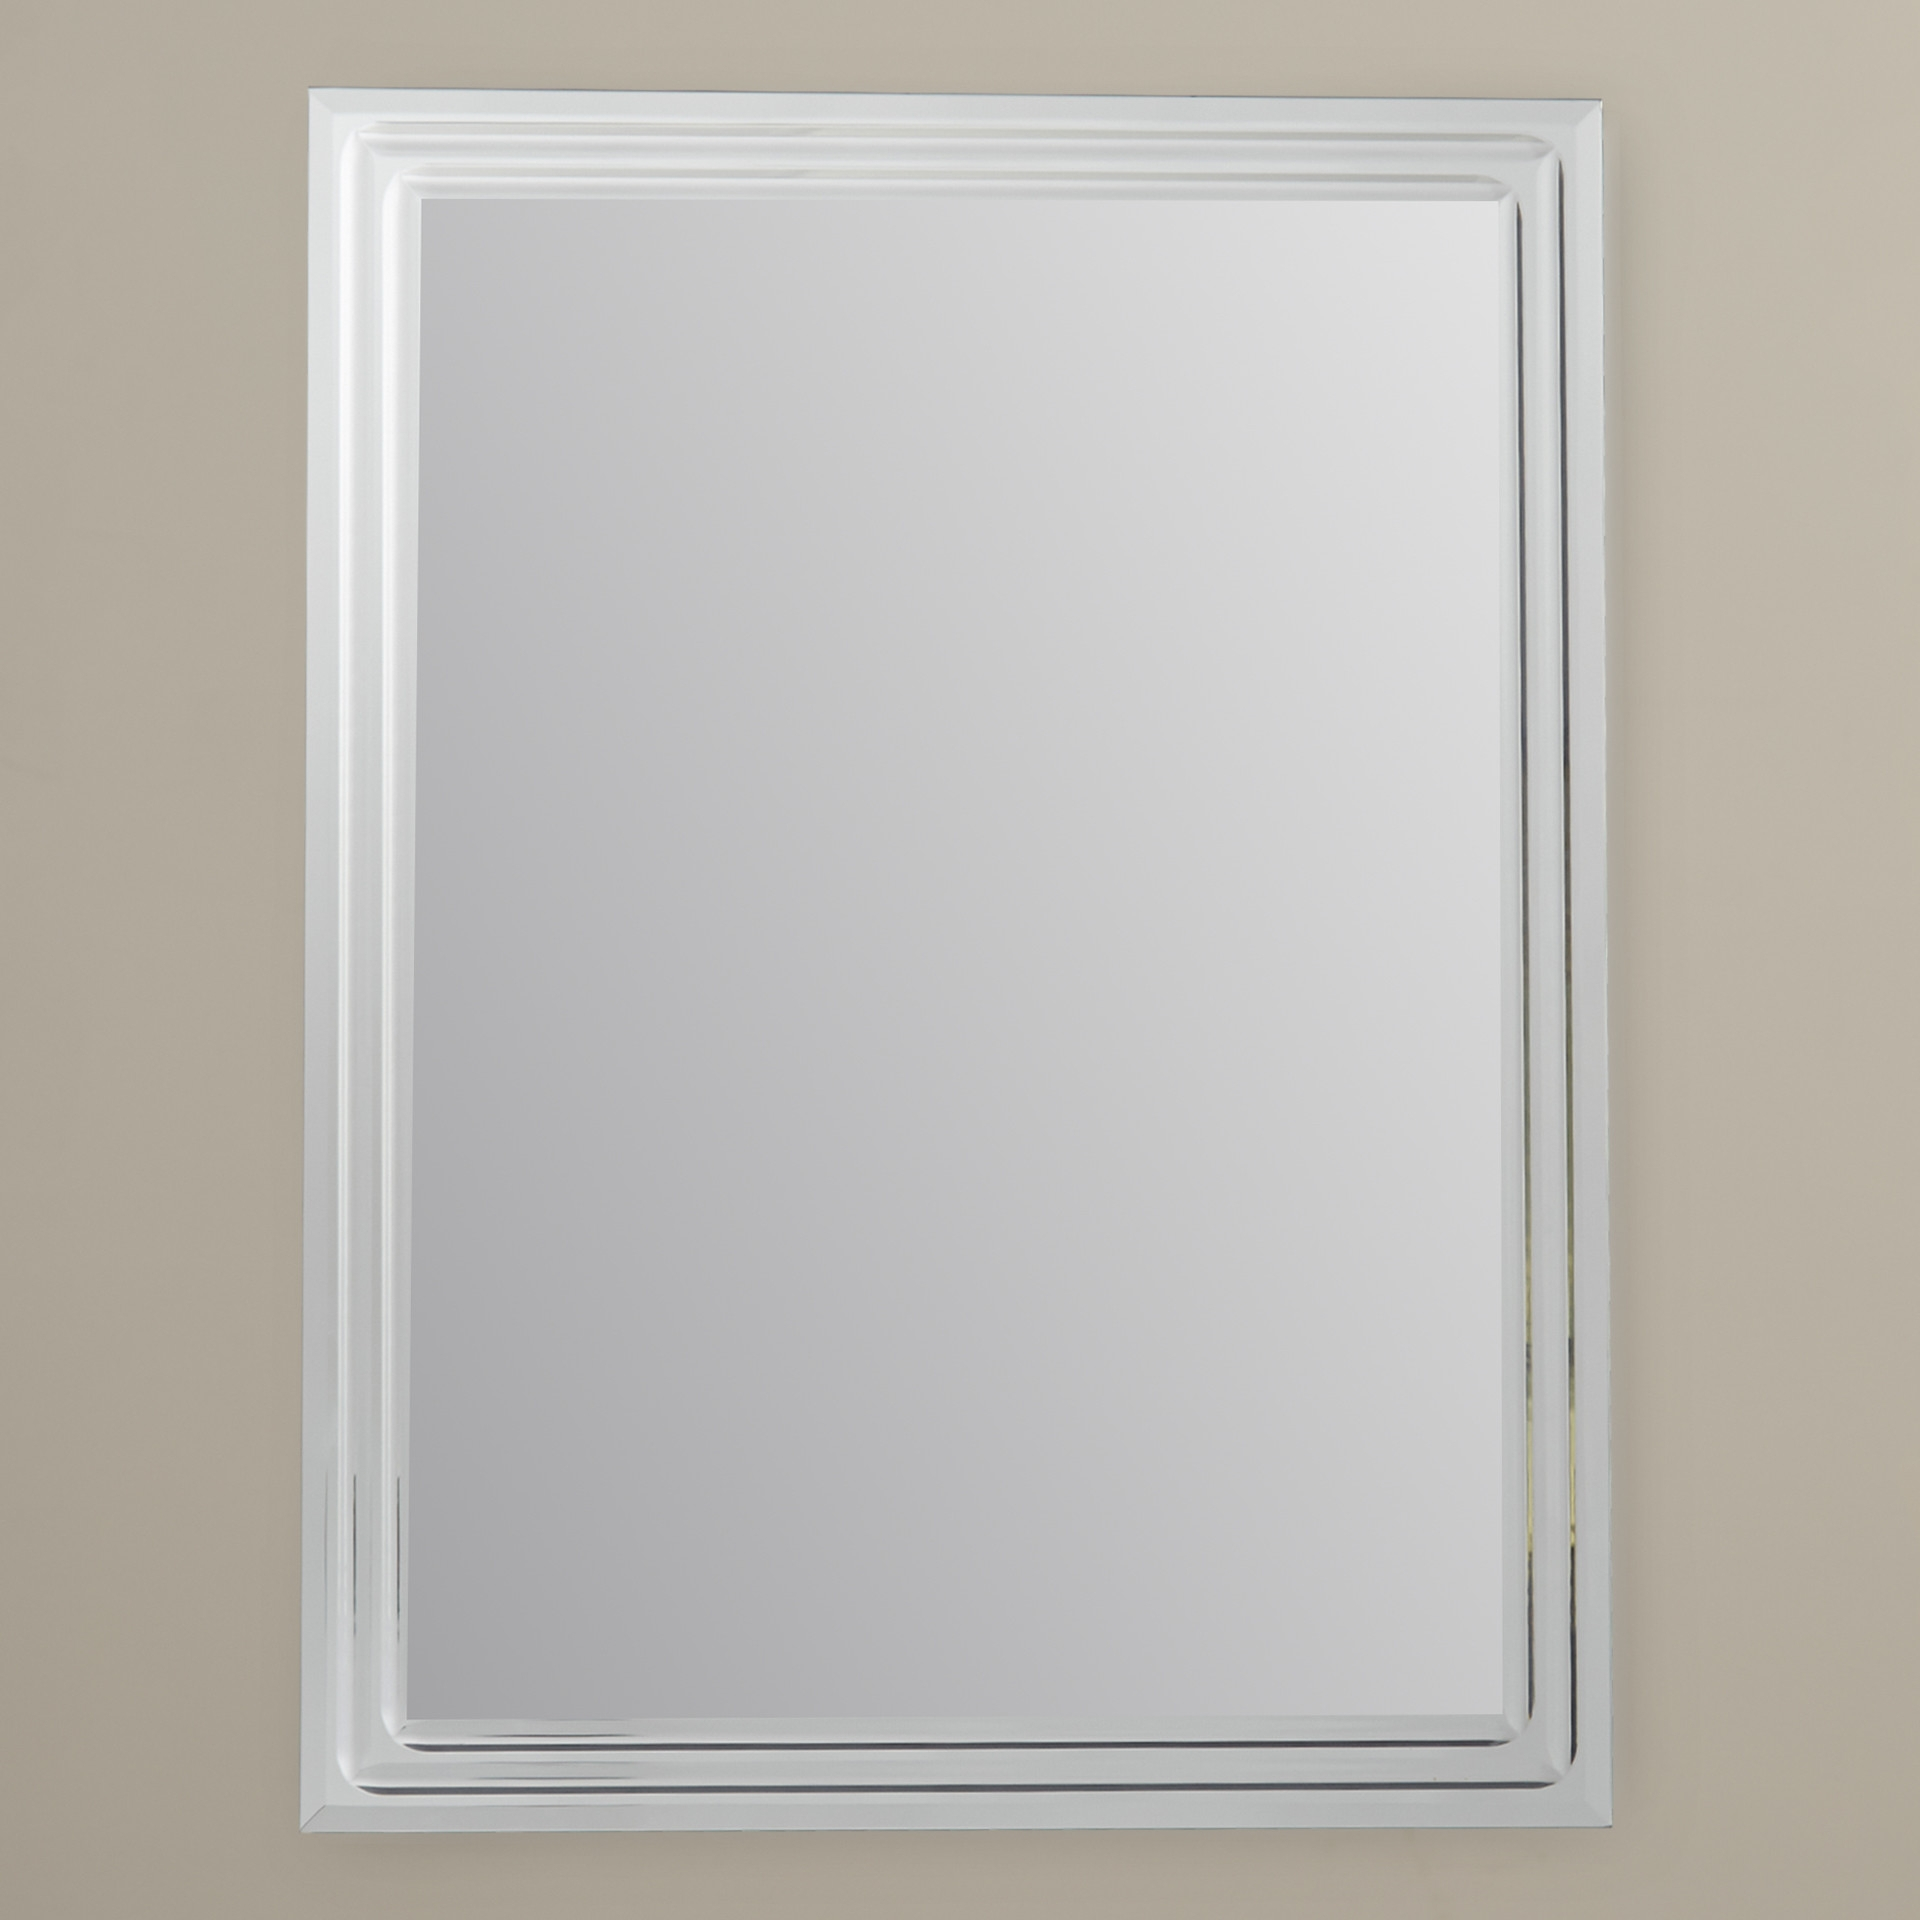 Interior Frameless Bathroom Mirror Full Length In Awesome Large For Large Frameless Mirrors (Image 9 of 15)